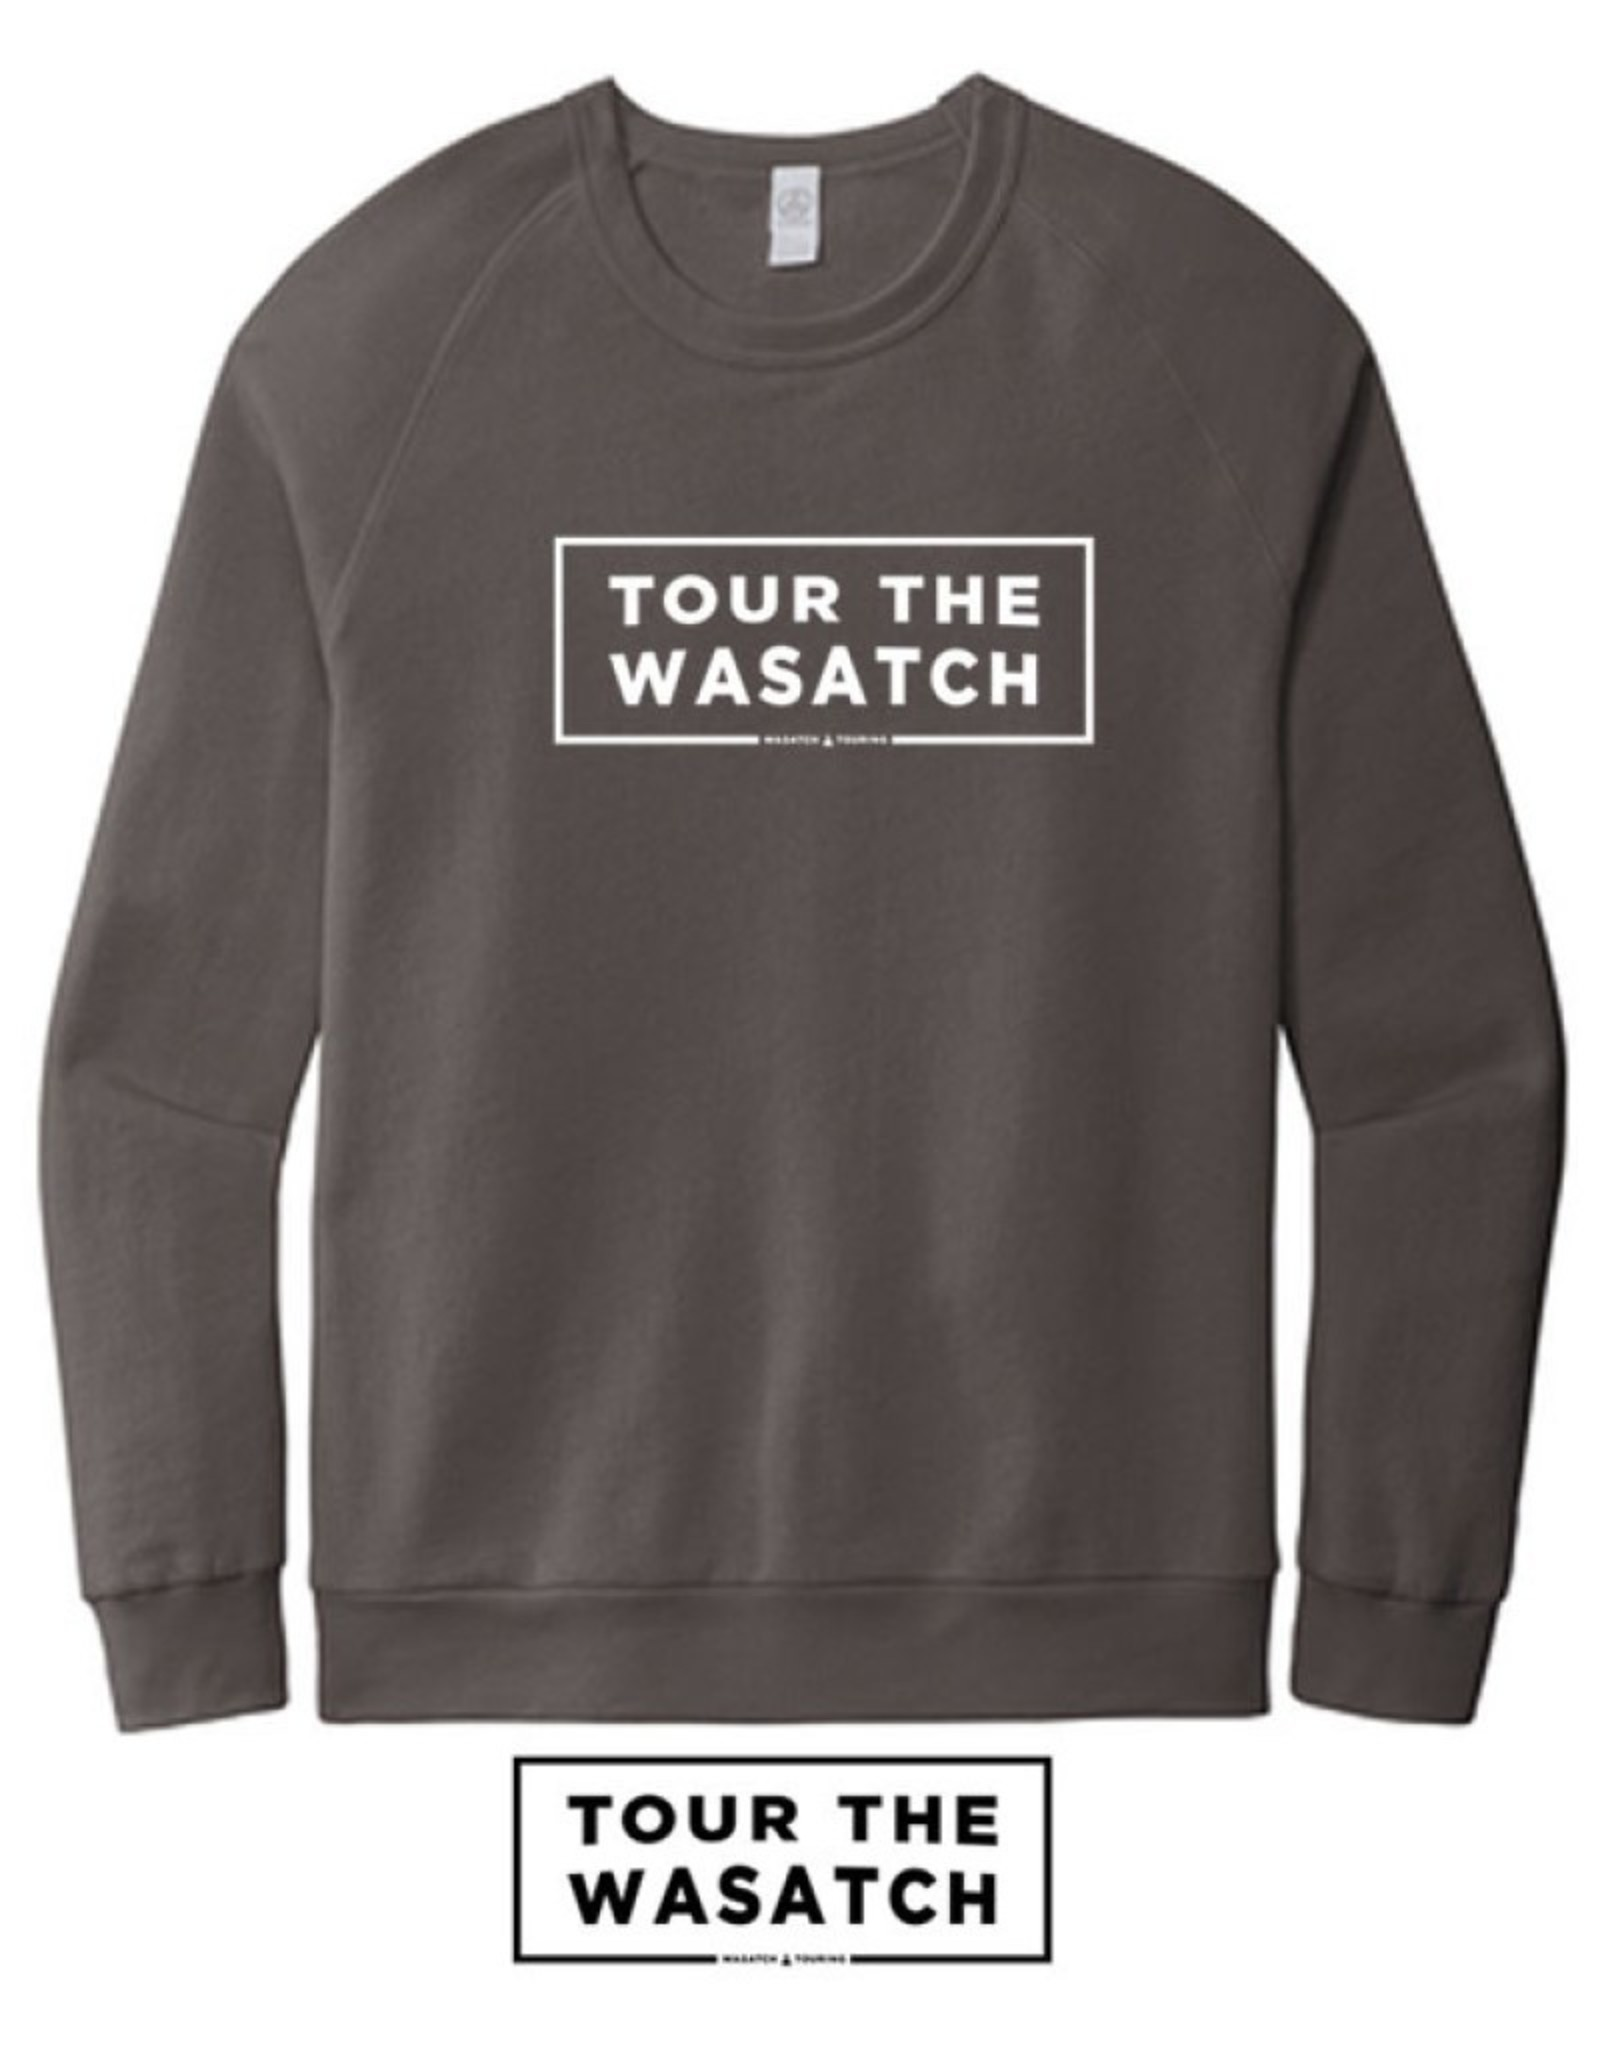 Tour The Wasatch LS crew